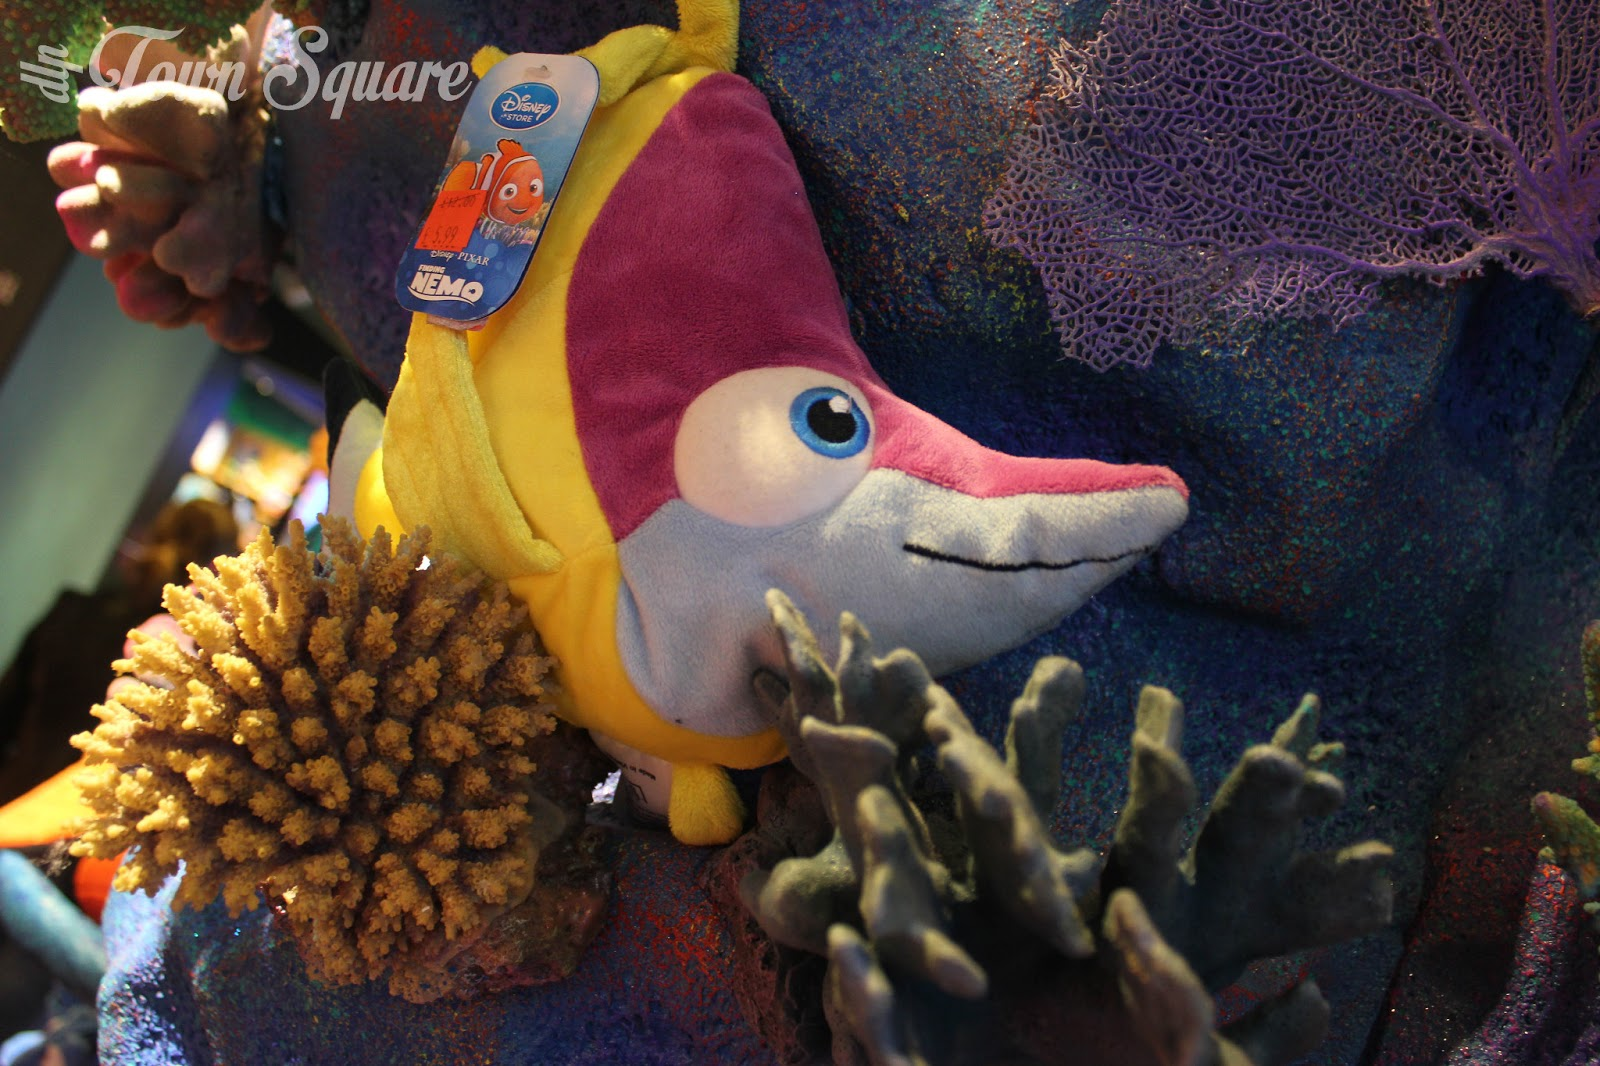 A Finding Nemo plush toy.